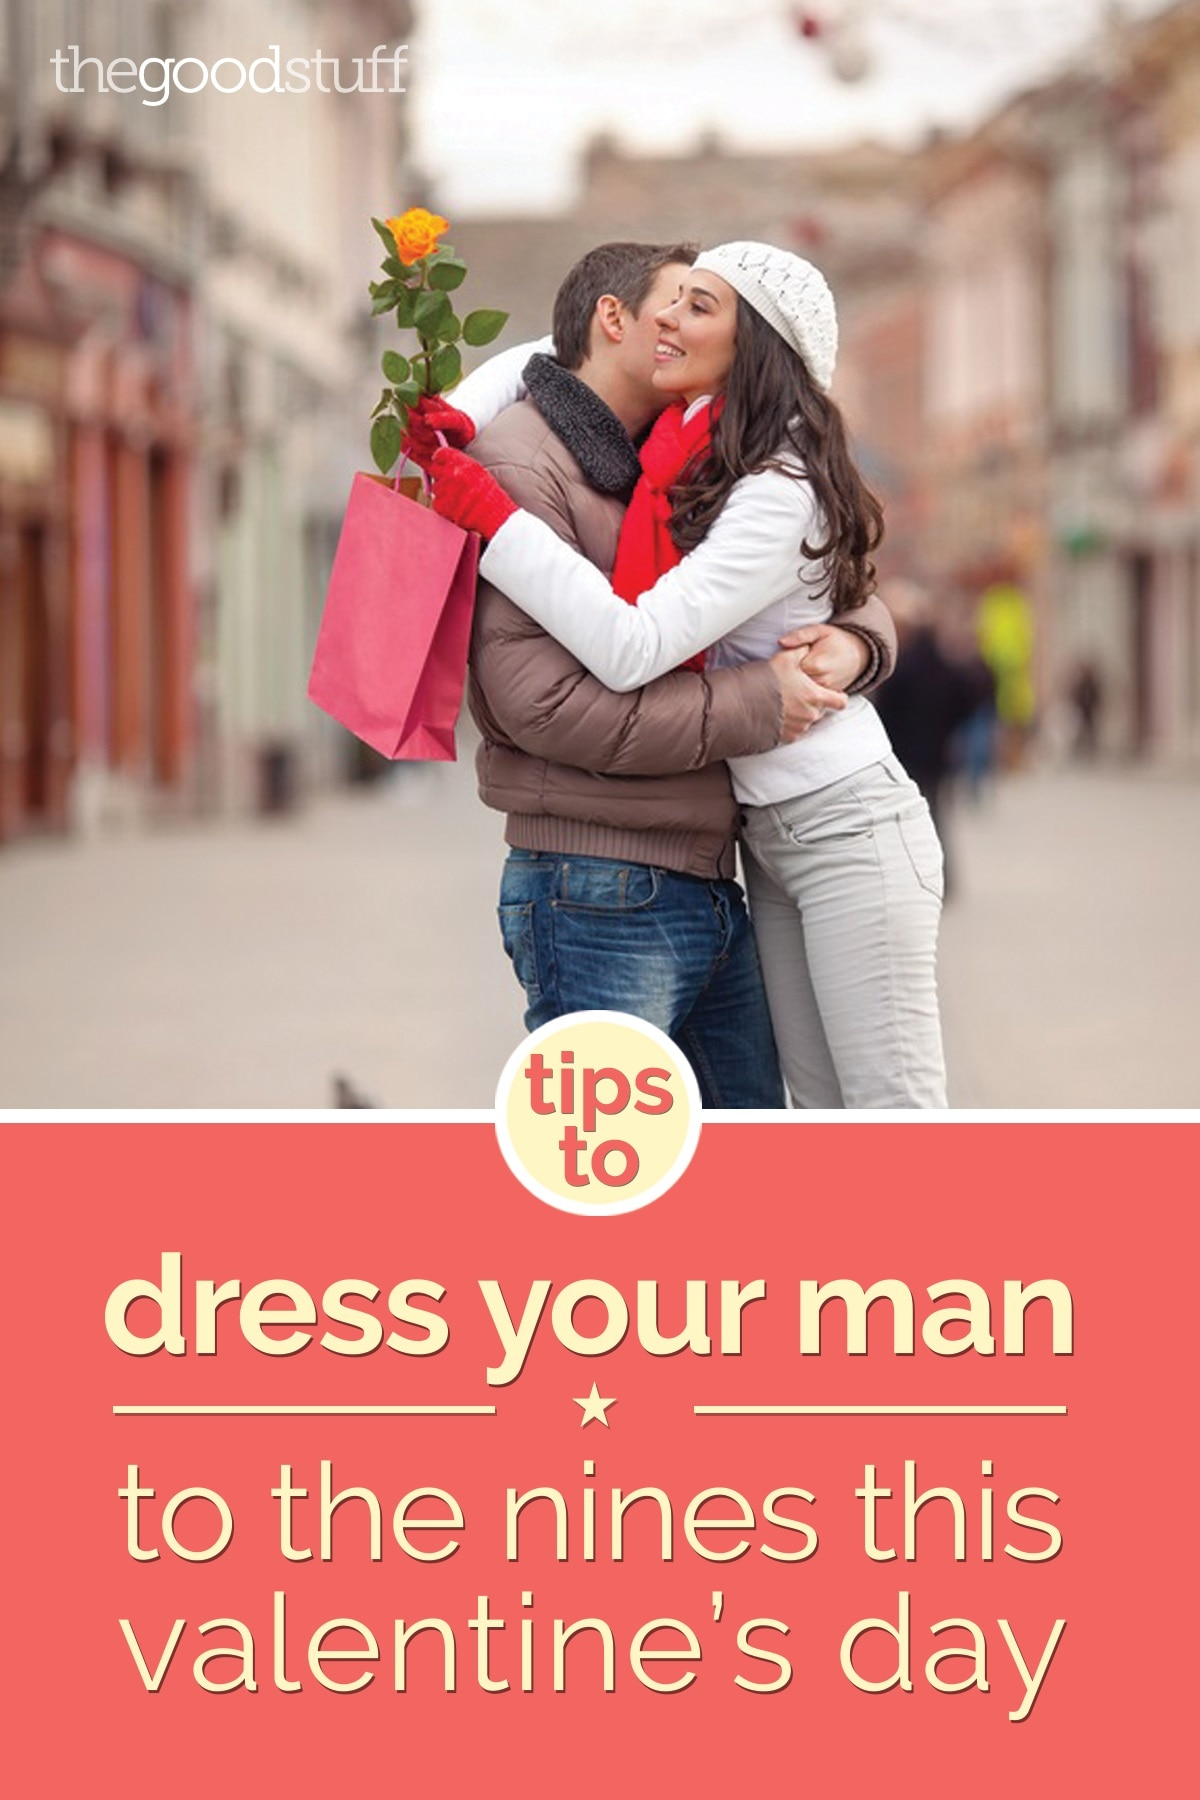 style-dress-your-man-for-valentines-day